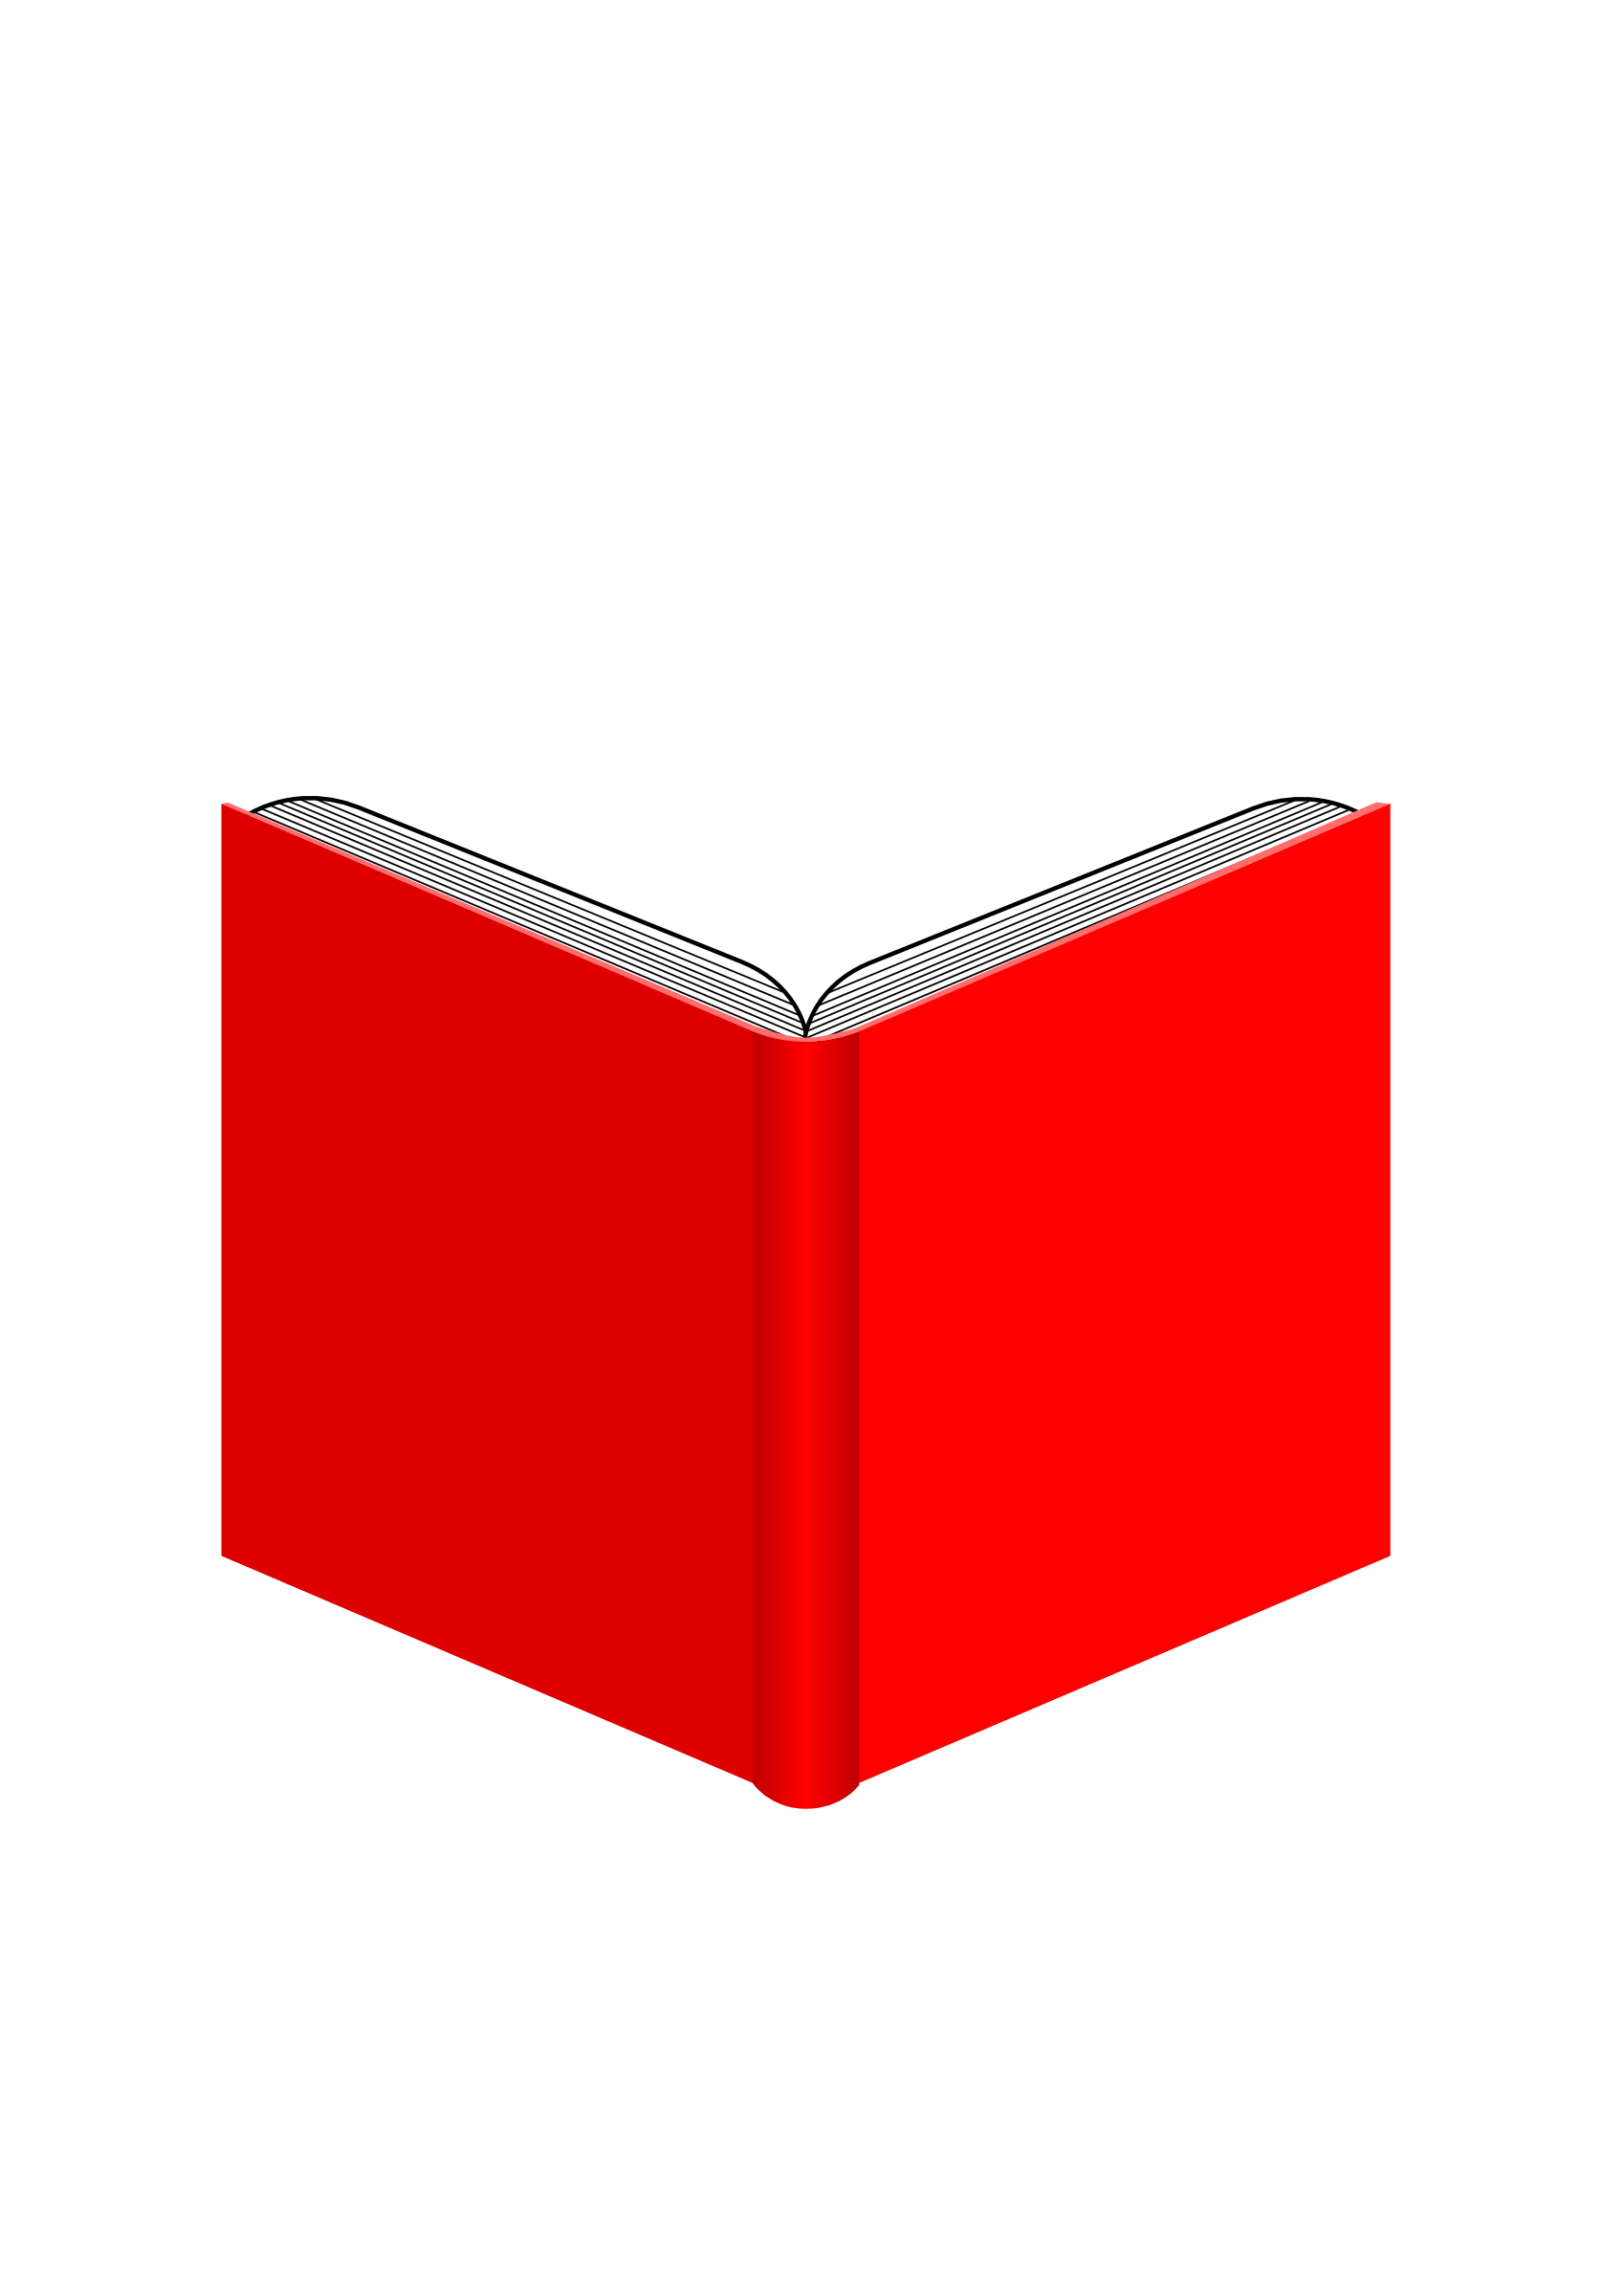 Square clipart book.  collection of open